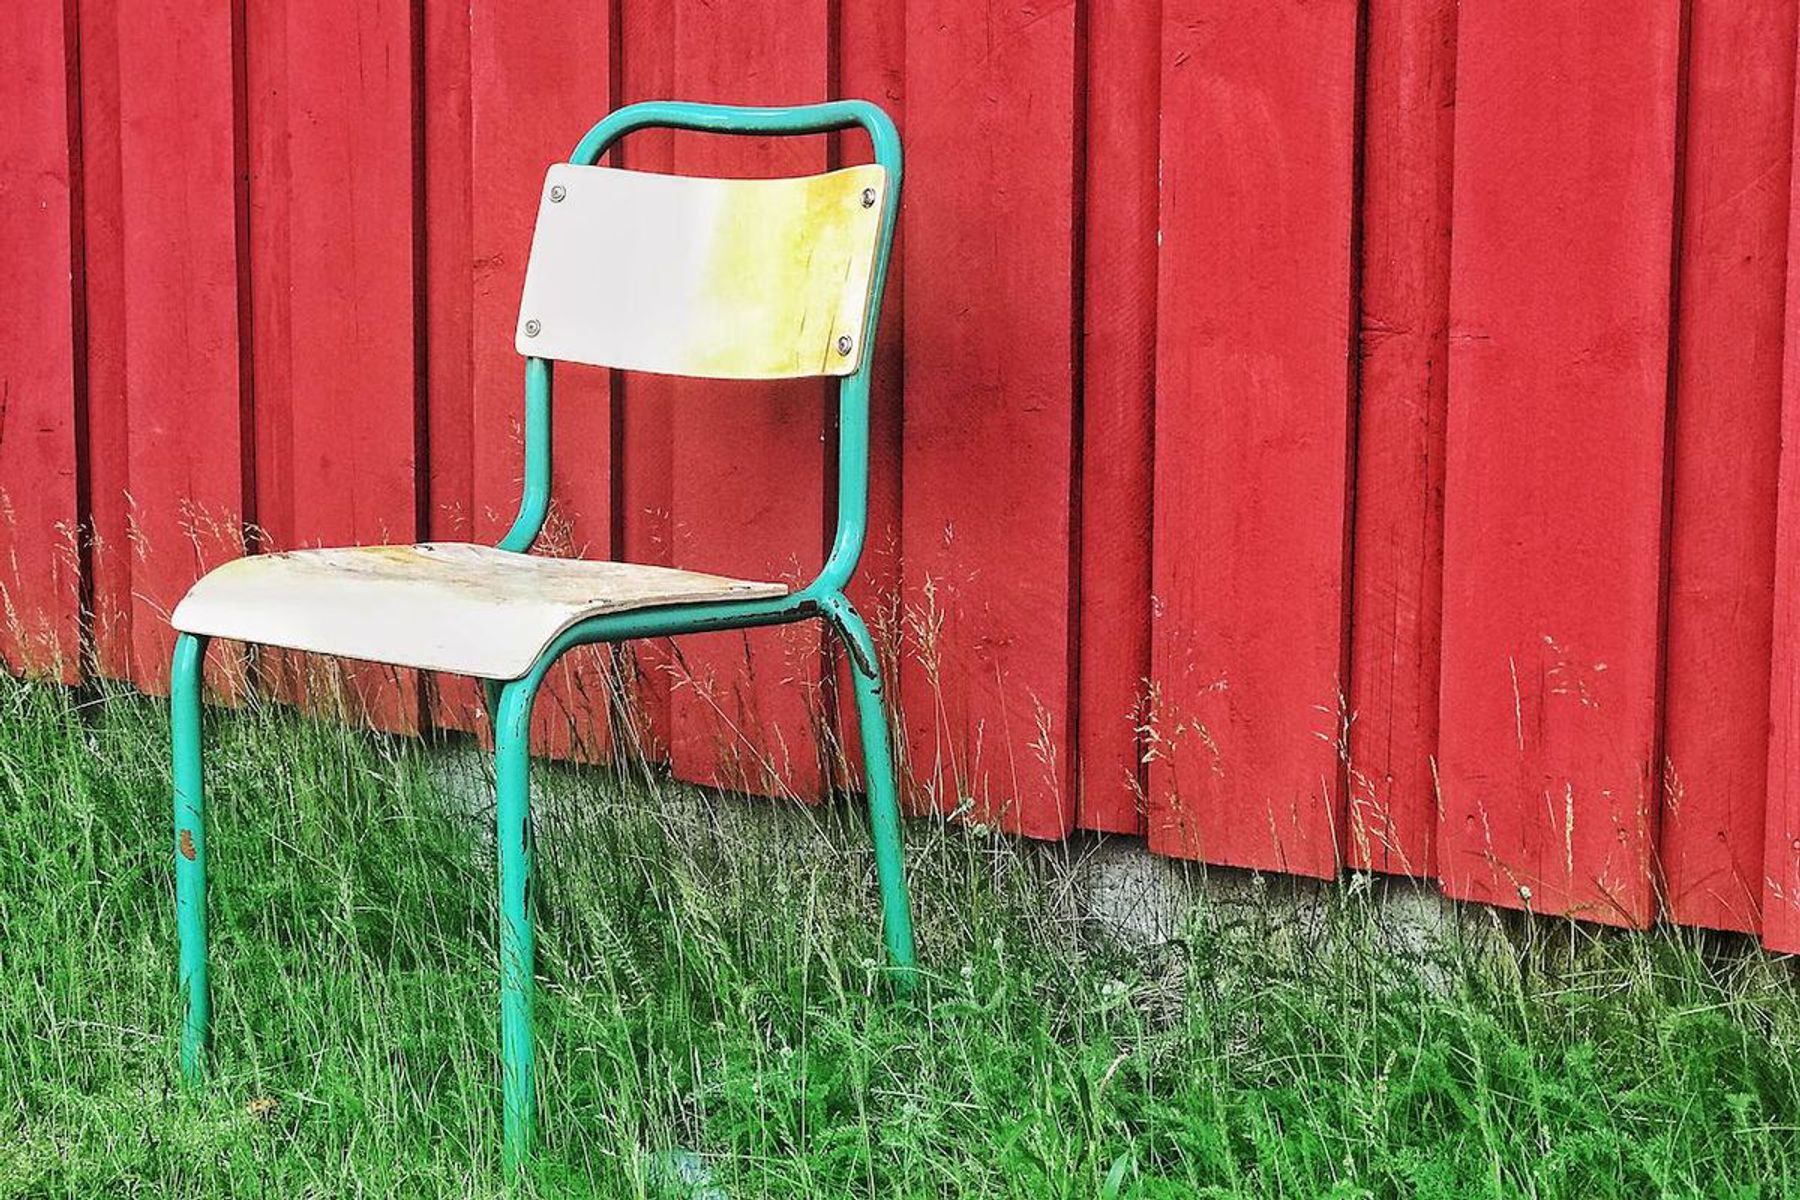 Metal and wood chair outside